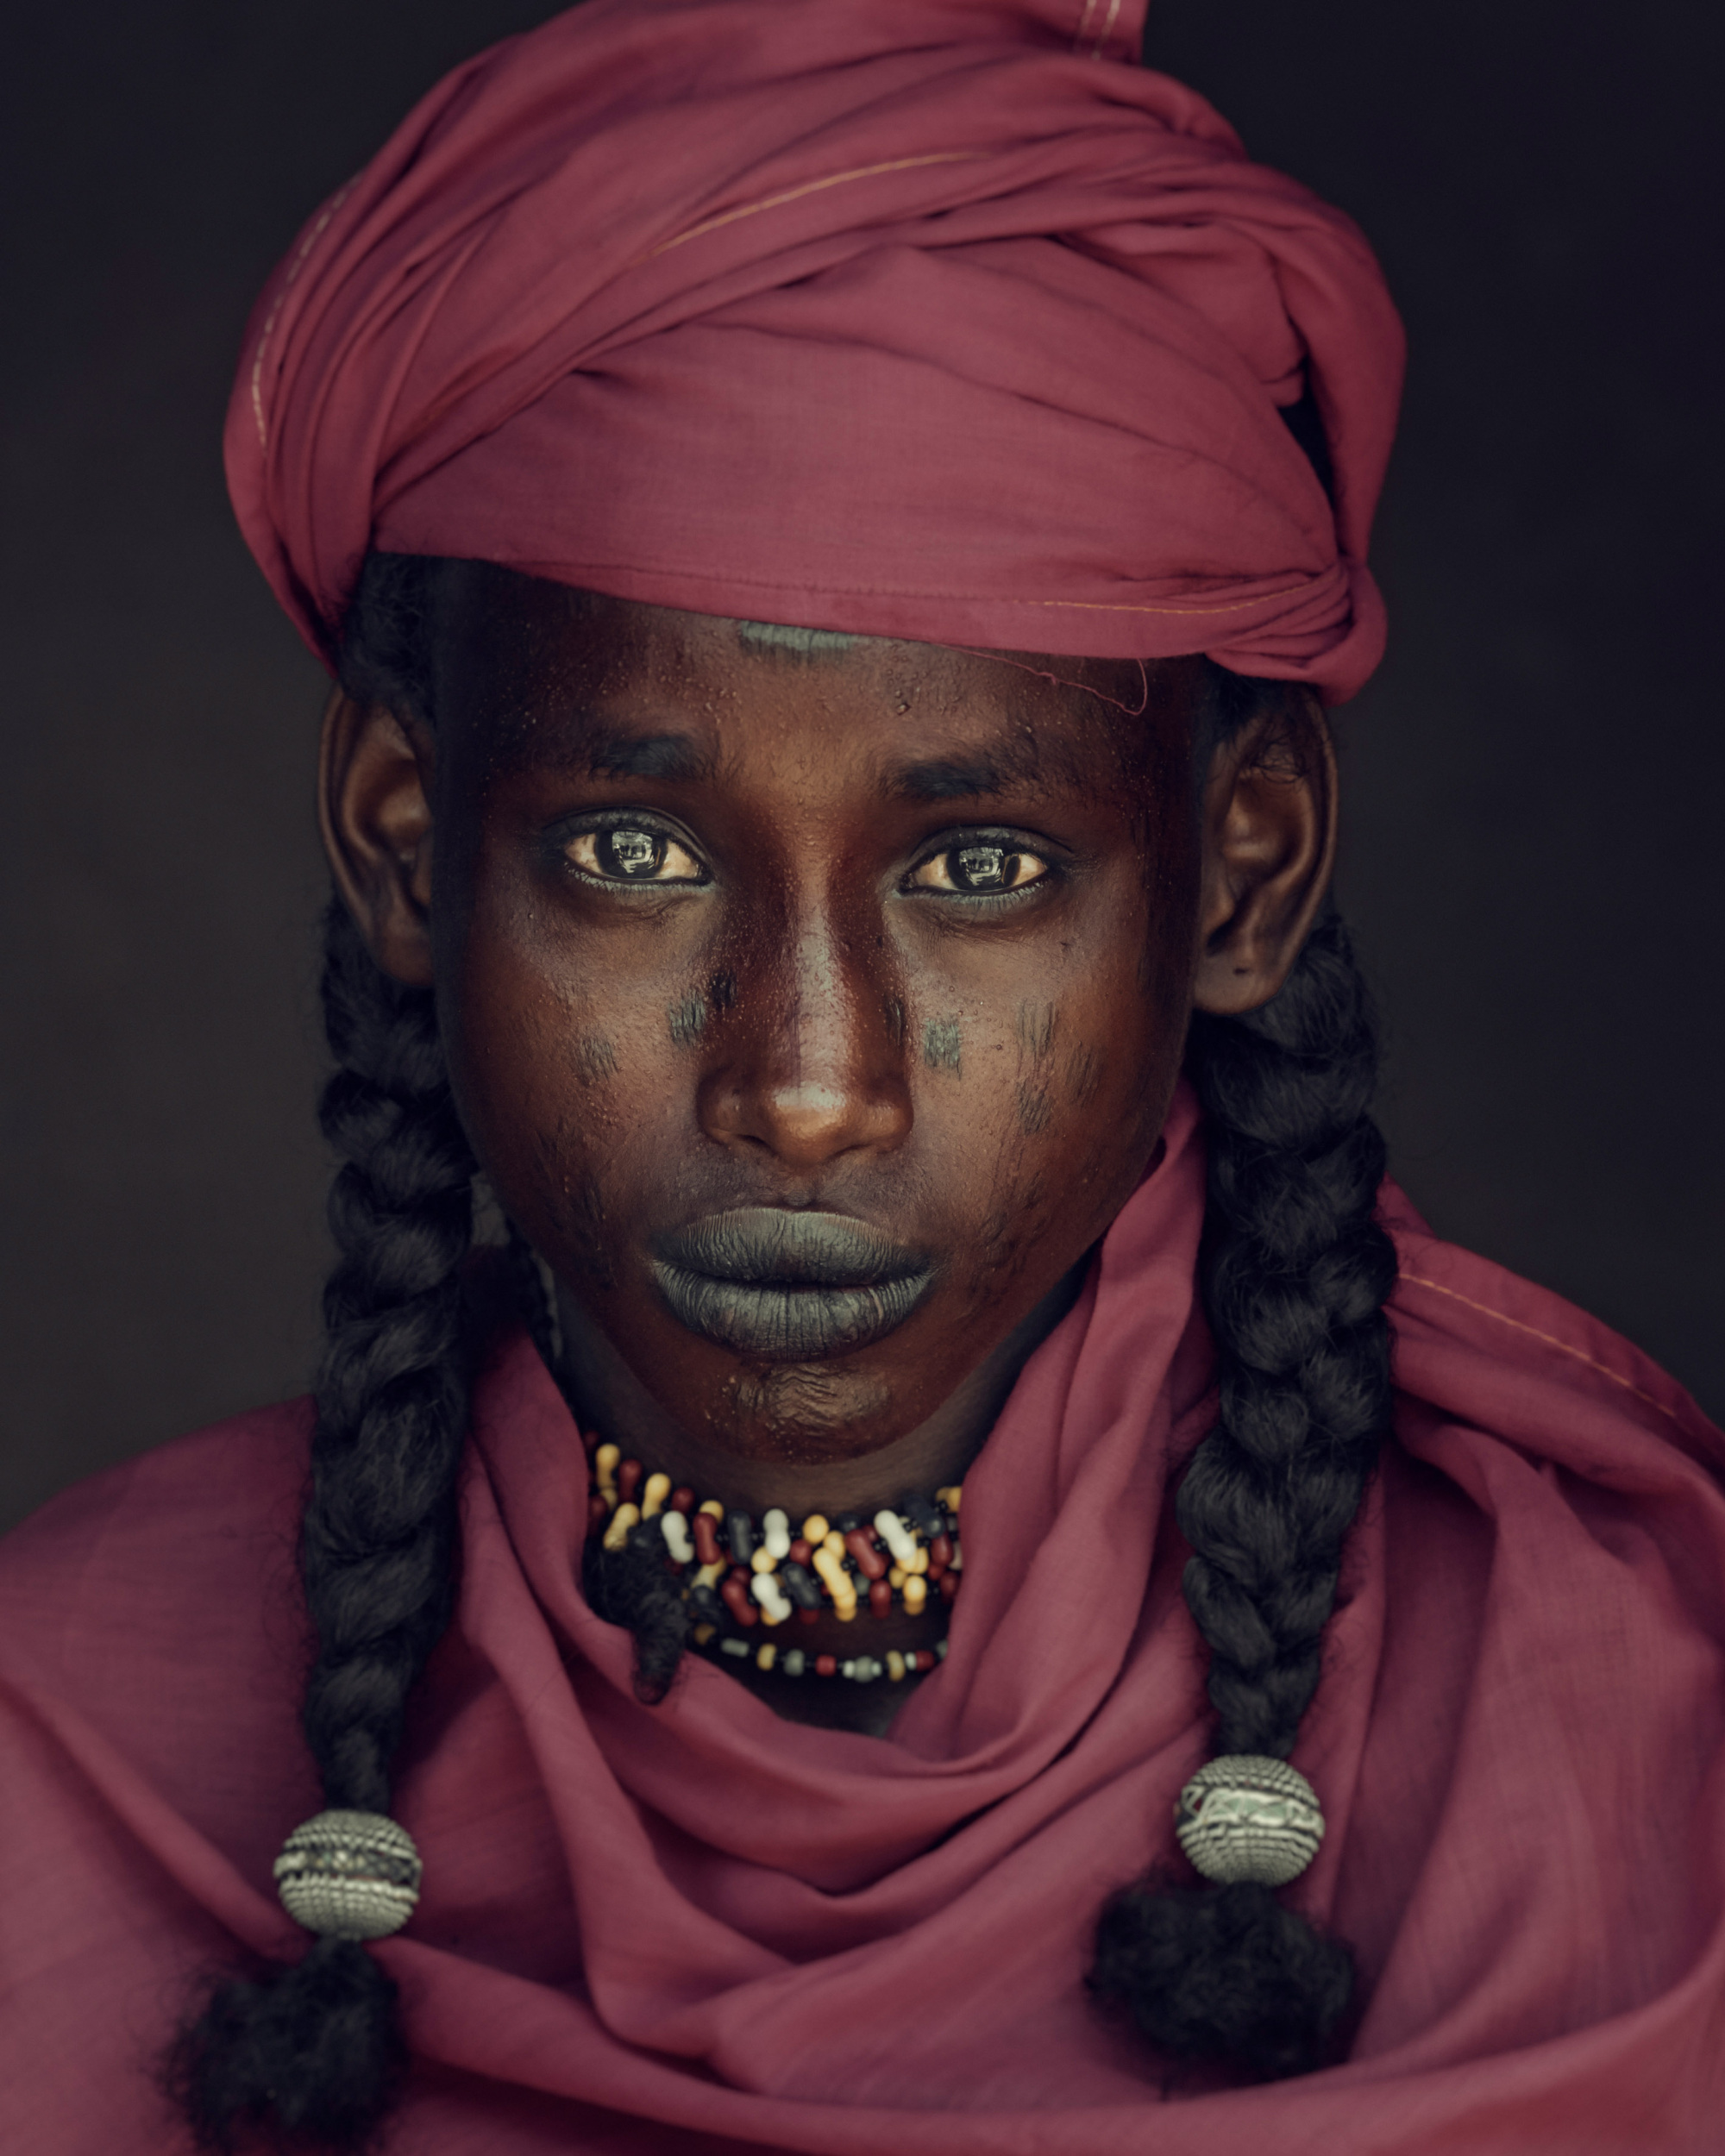 Before they pass away 2 - Gerewol Chad by Jimmy Nelson2.jpg